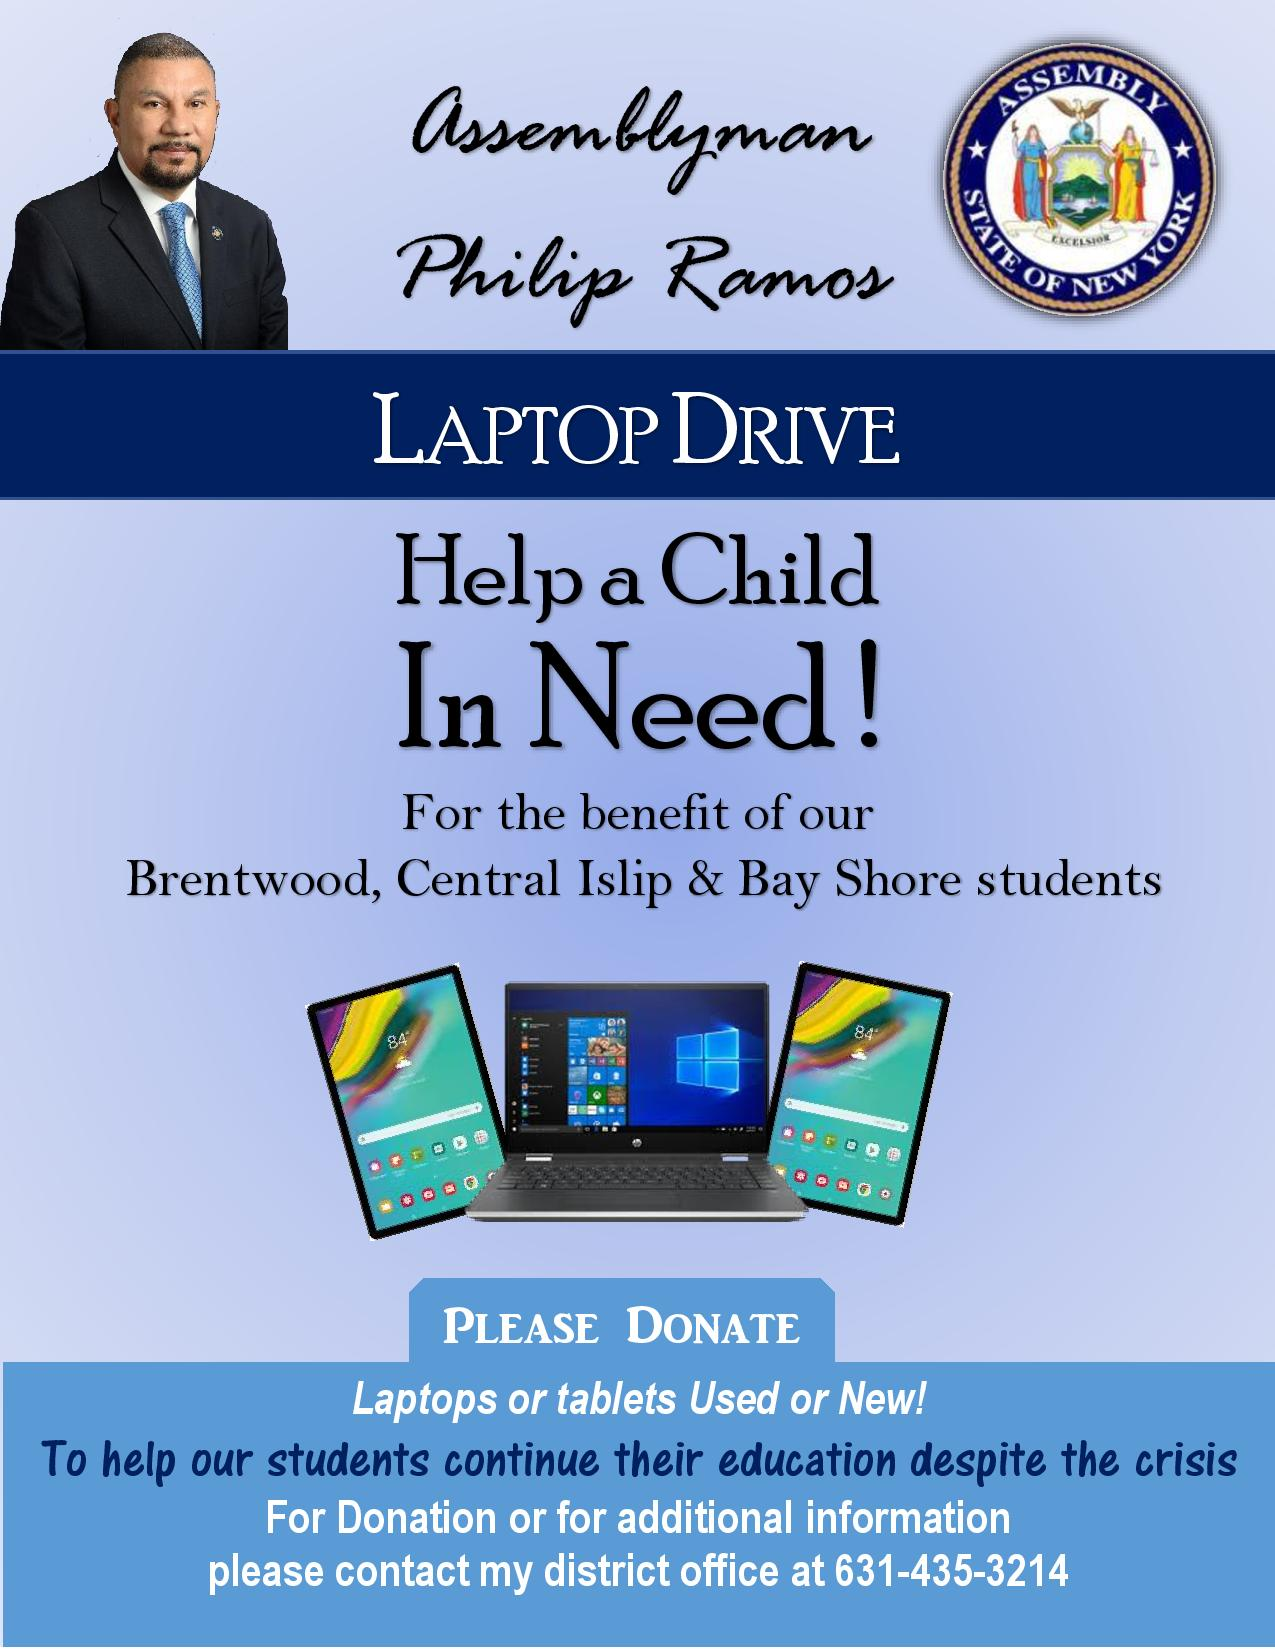 An image asking for the donation of laptops and tablets for students